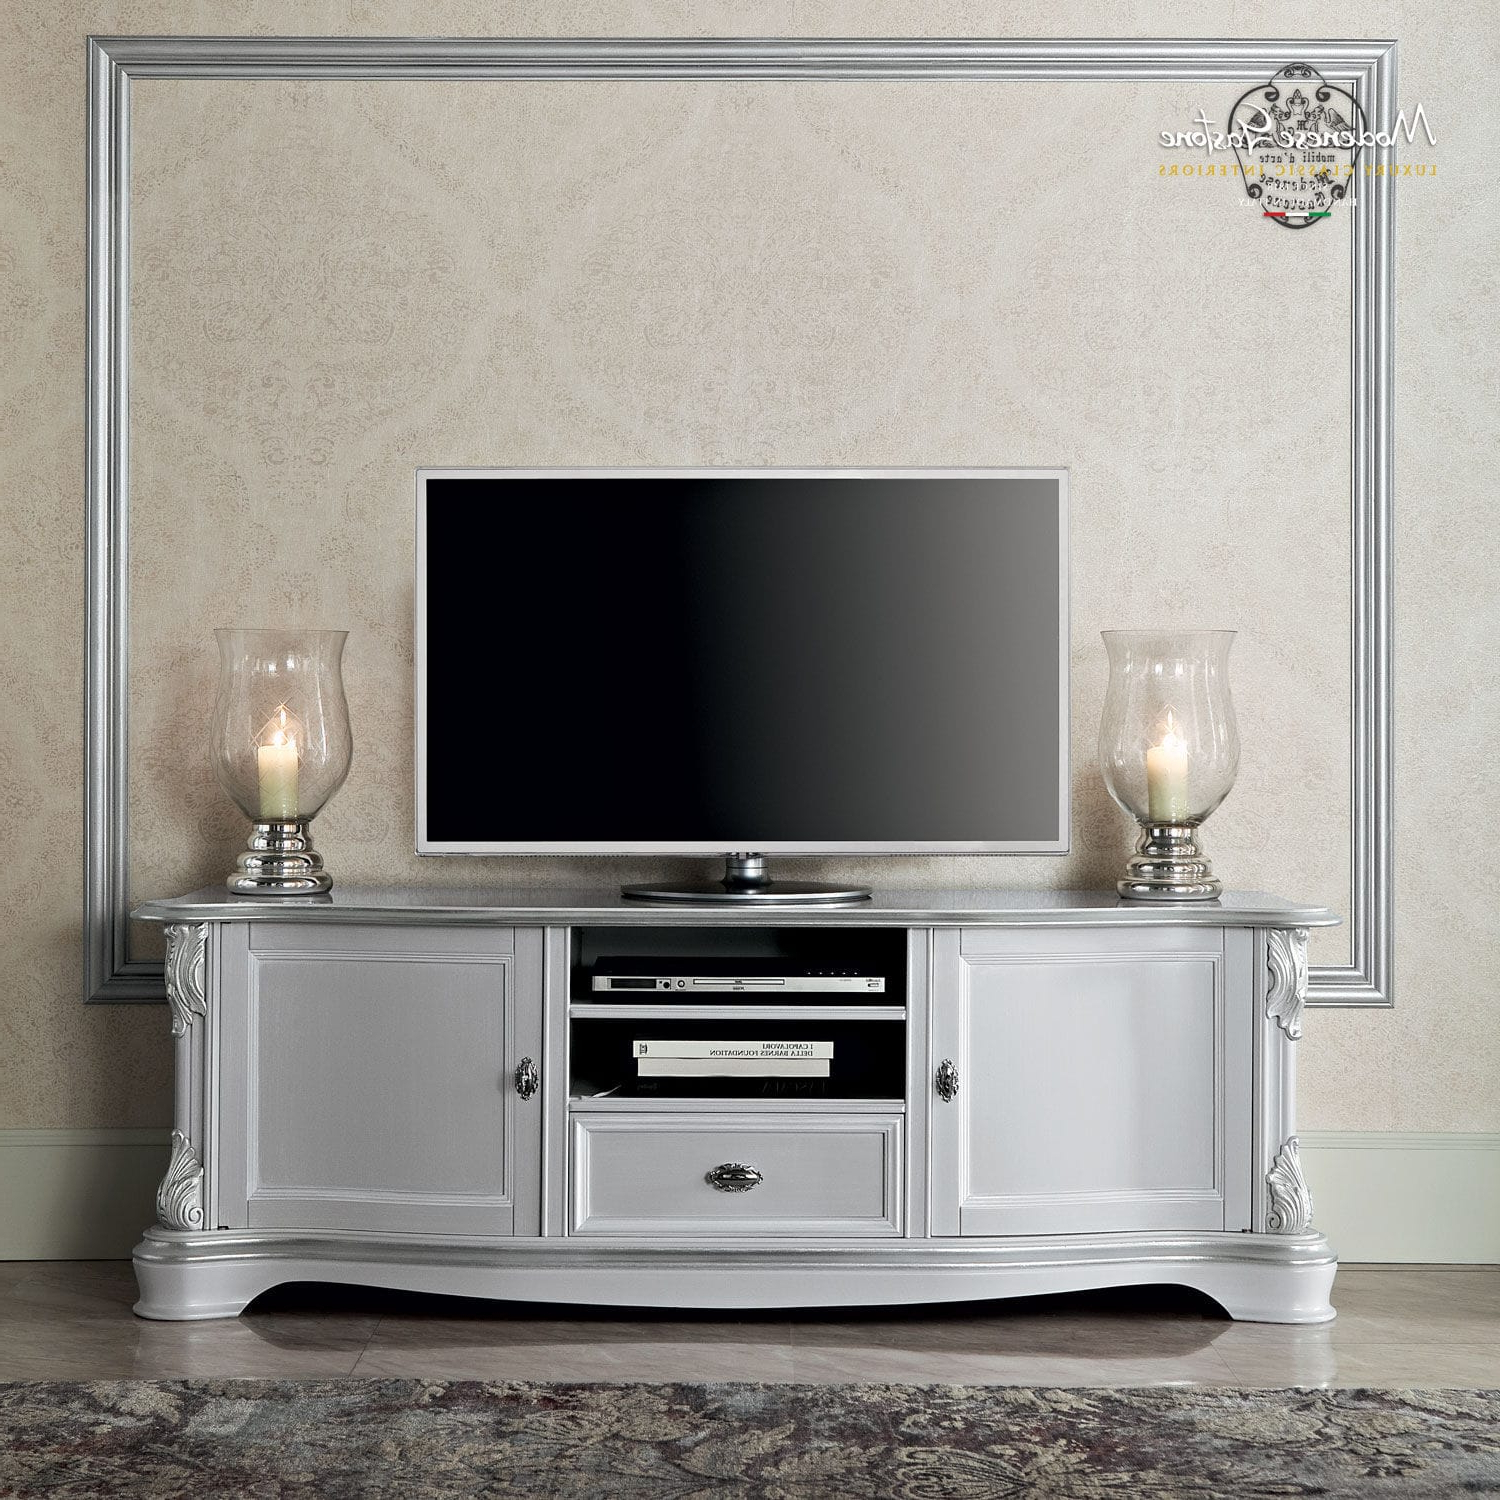 2018 Classic Tv Cabinet / Solid Wood – Bella Vita – Modenese Gastone Throughout Classic Tv Cabinets (View 6 of 20)